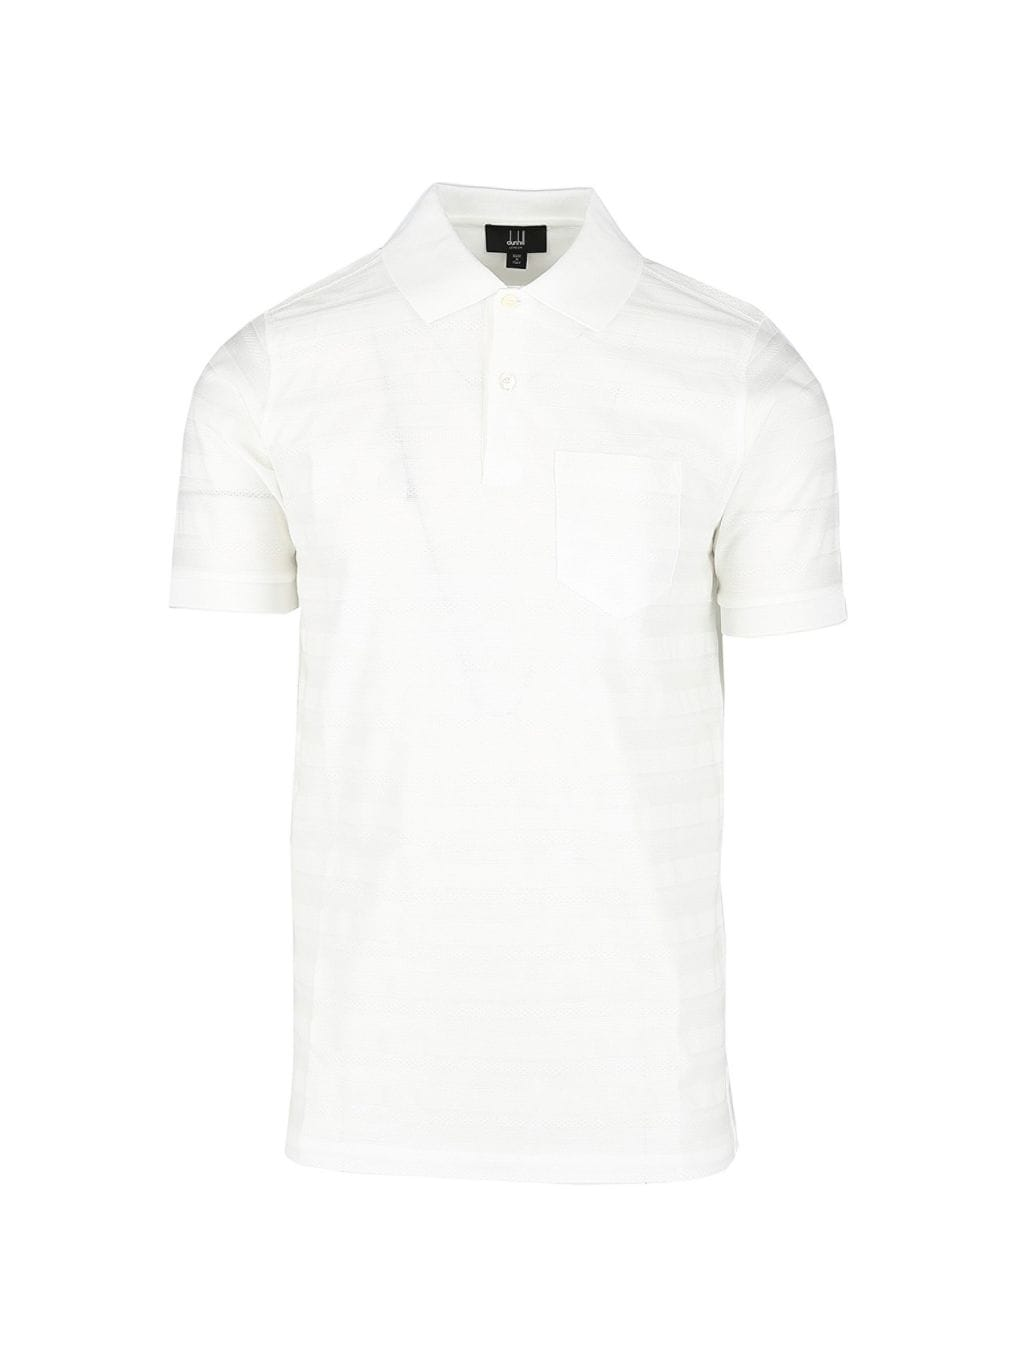 Dunhill Regular-Fit Textured Stripe Cotton Polo